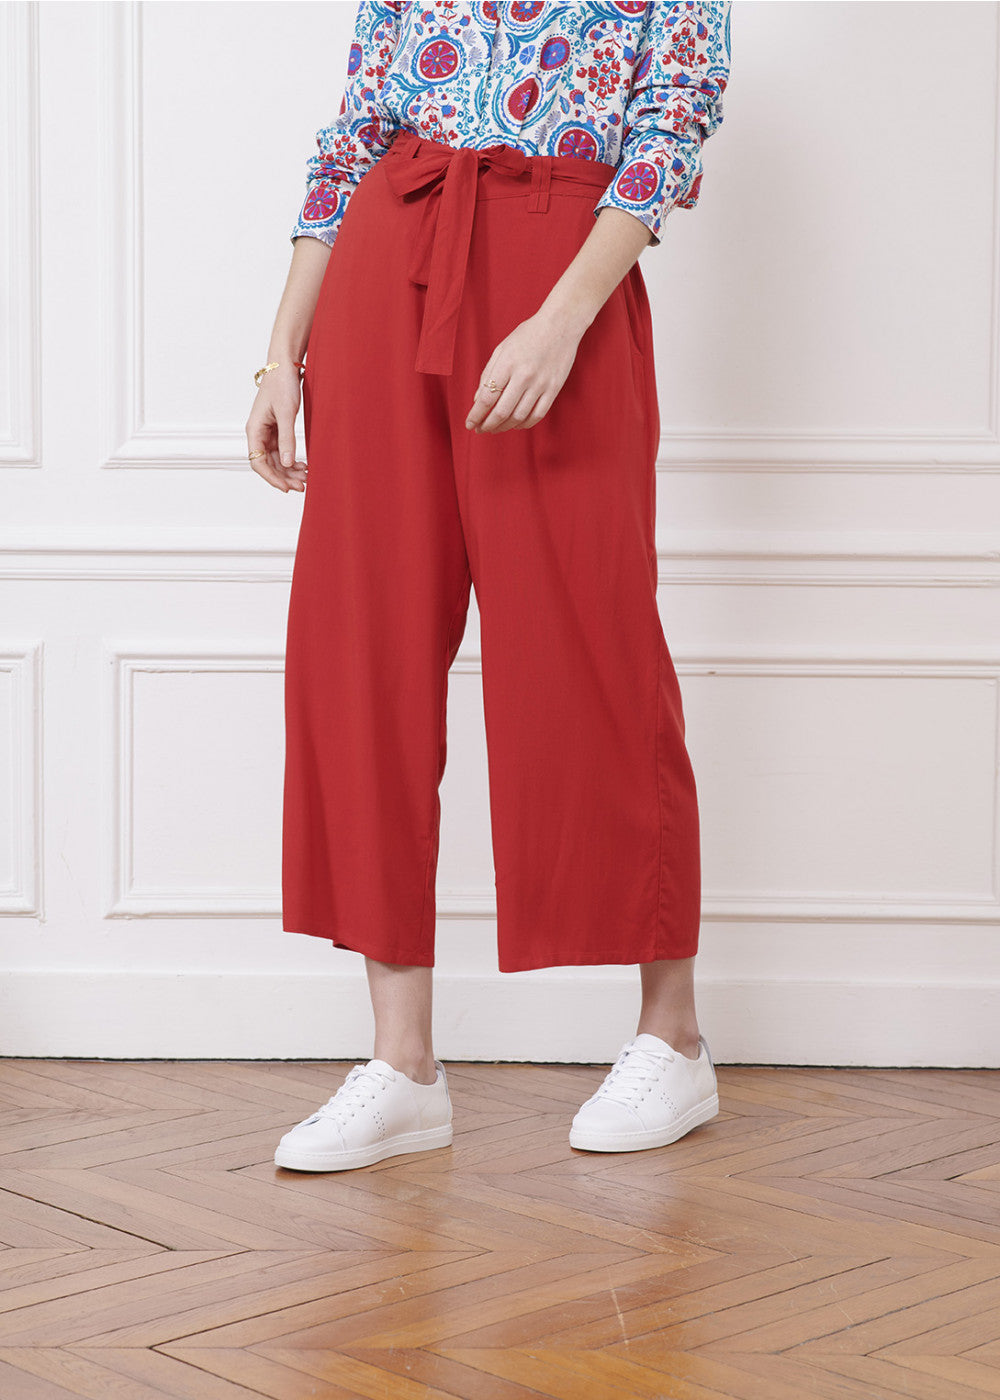 SANDRO PANT - RED